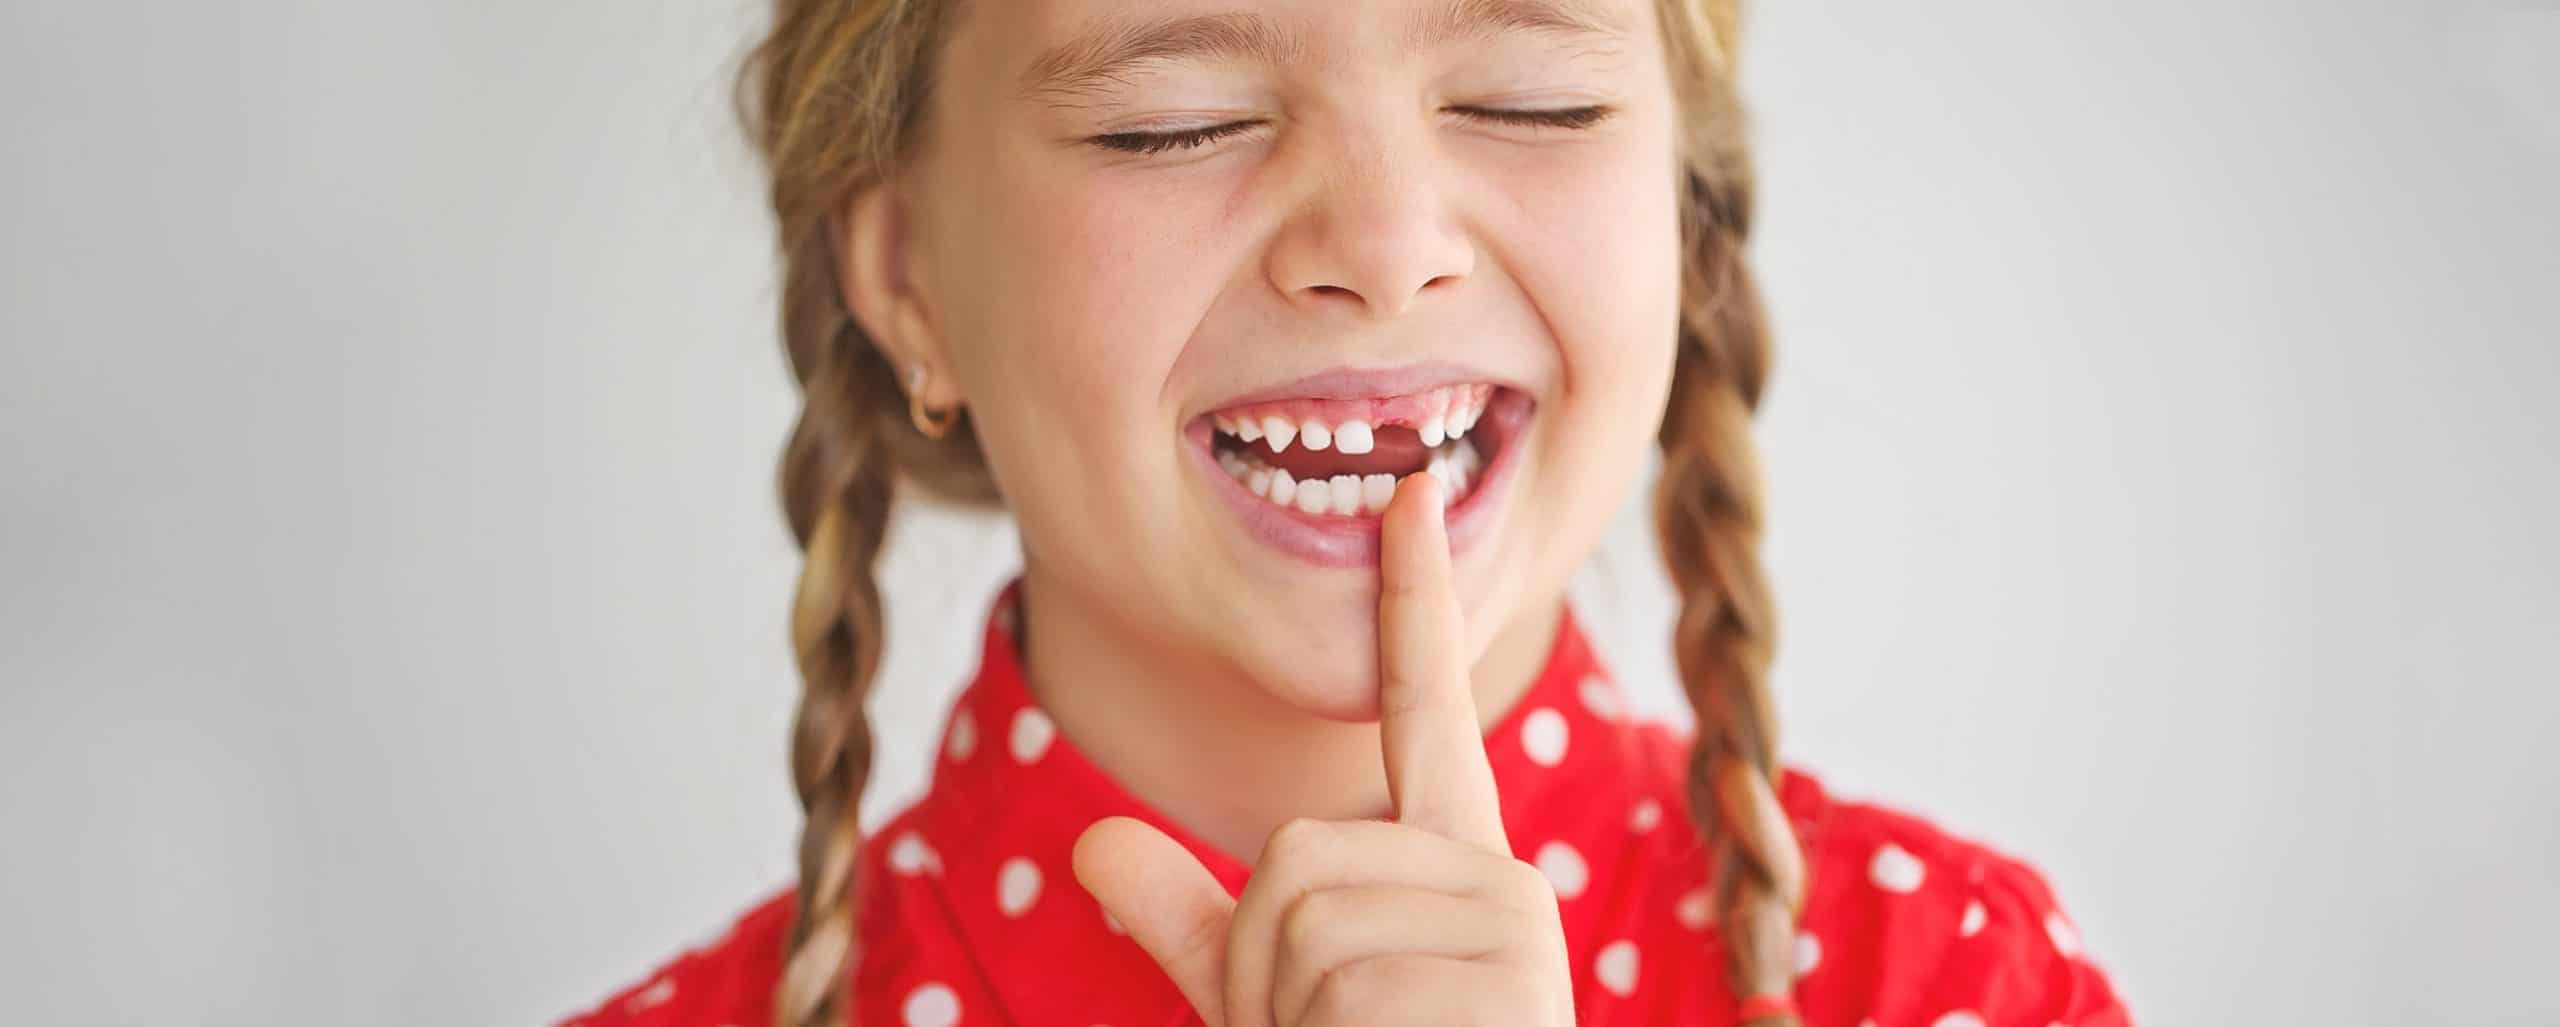 What Age Should Your Child be Losing Teeth?